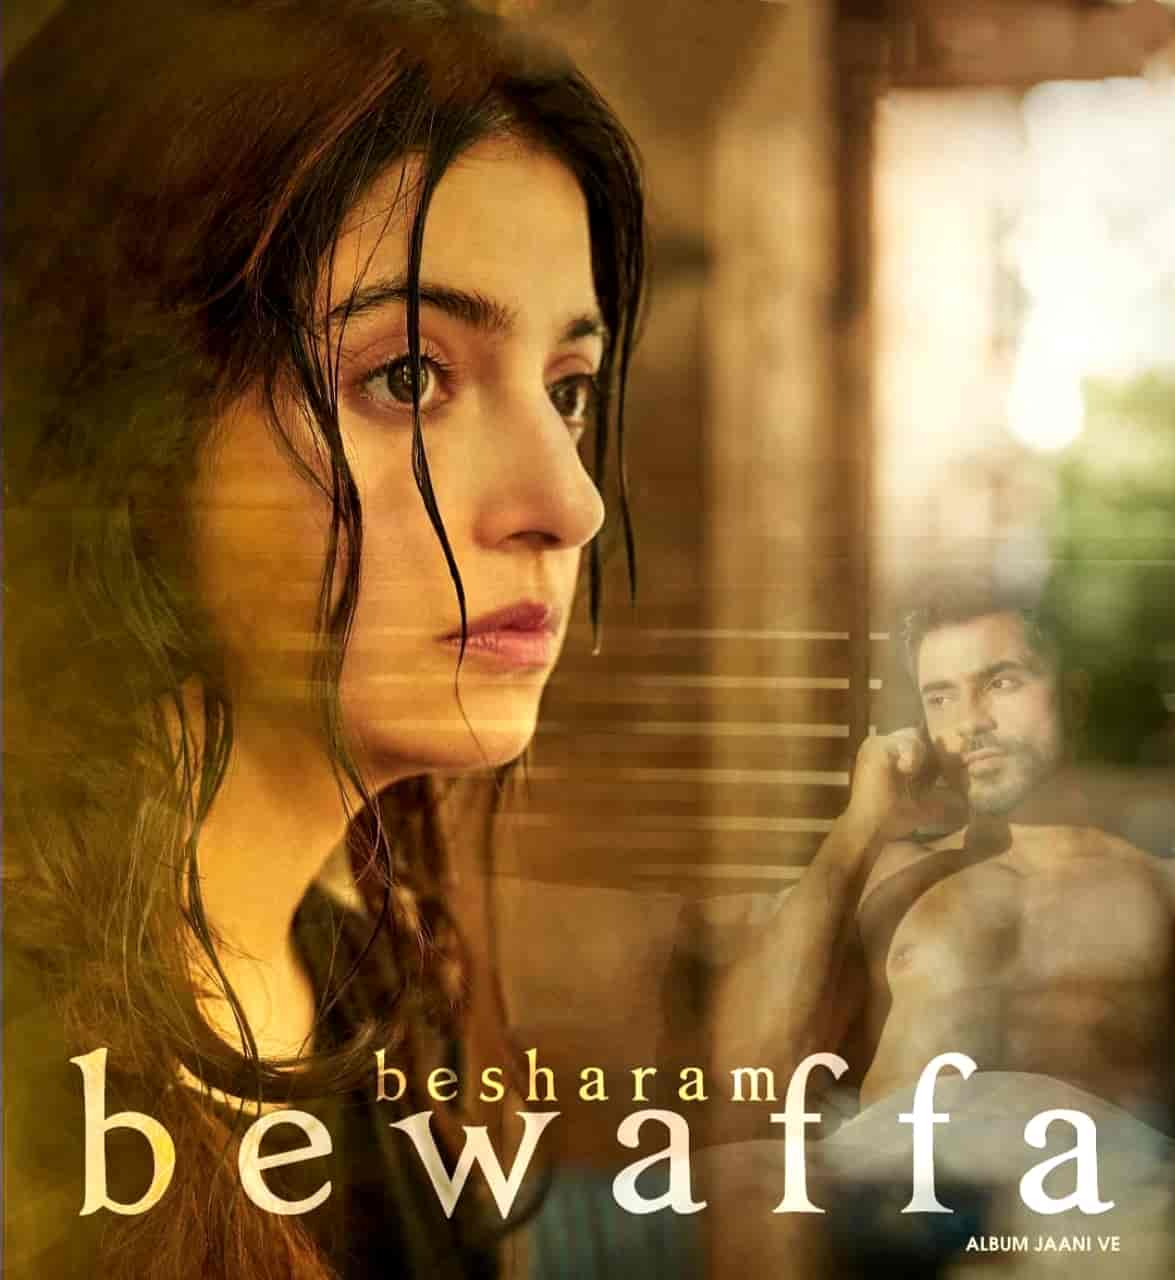 Besharam Bewaffa Hindi Song Image Features Divya Khosla Kumar